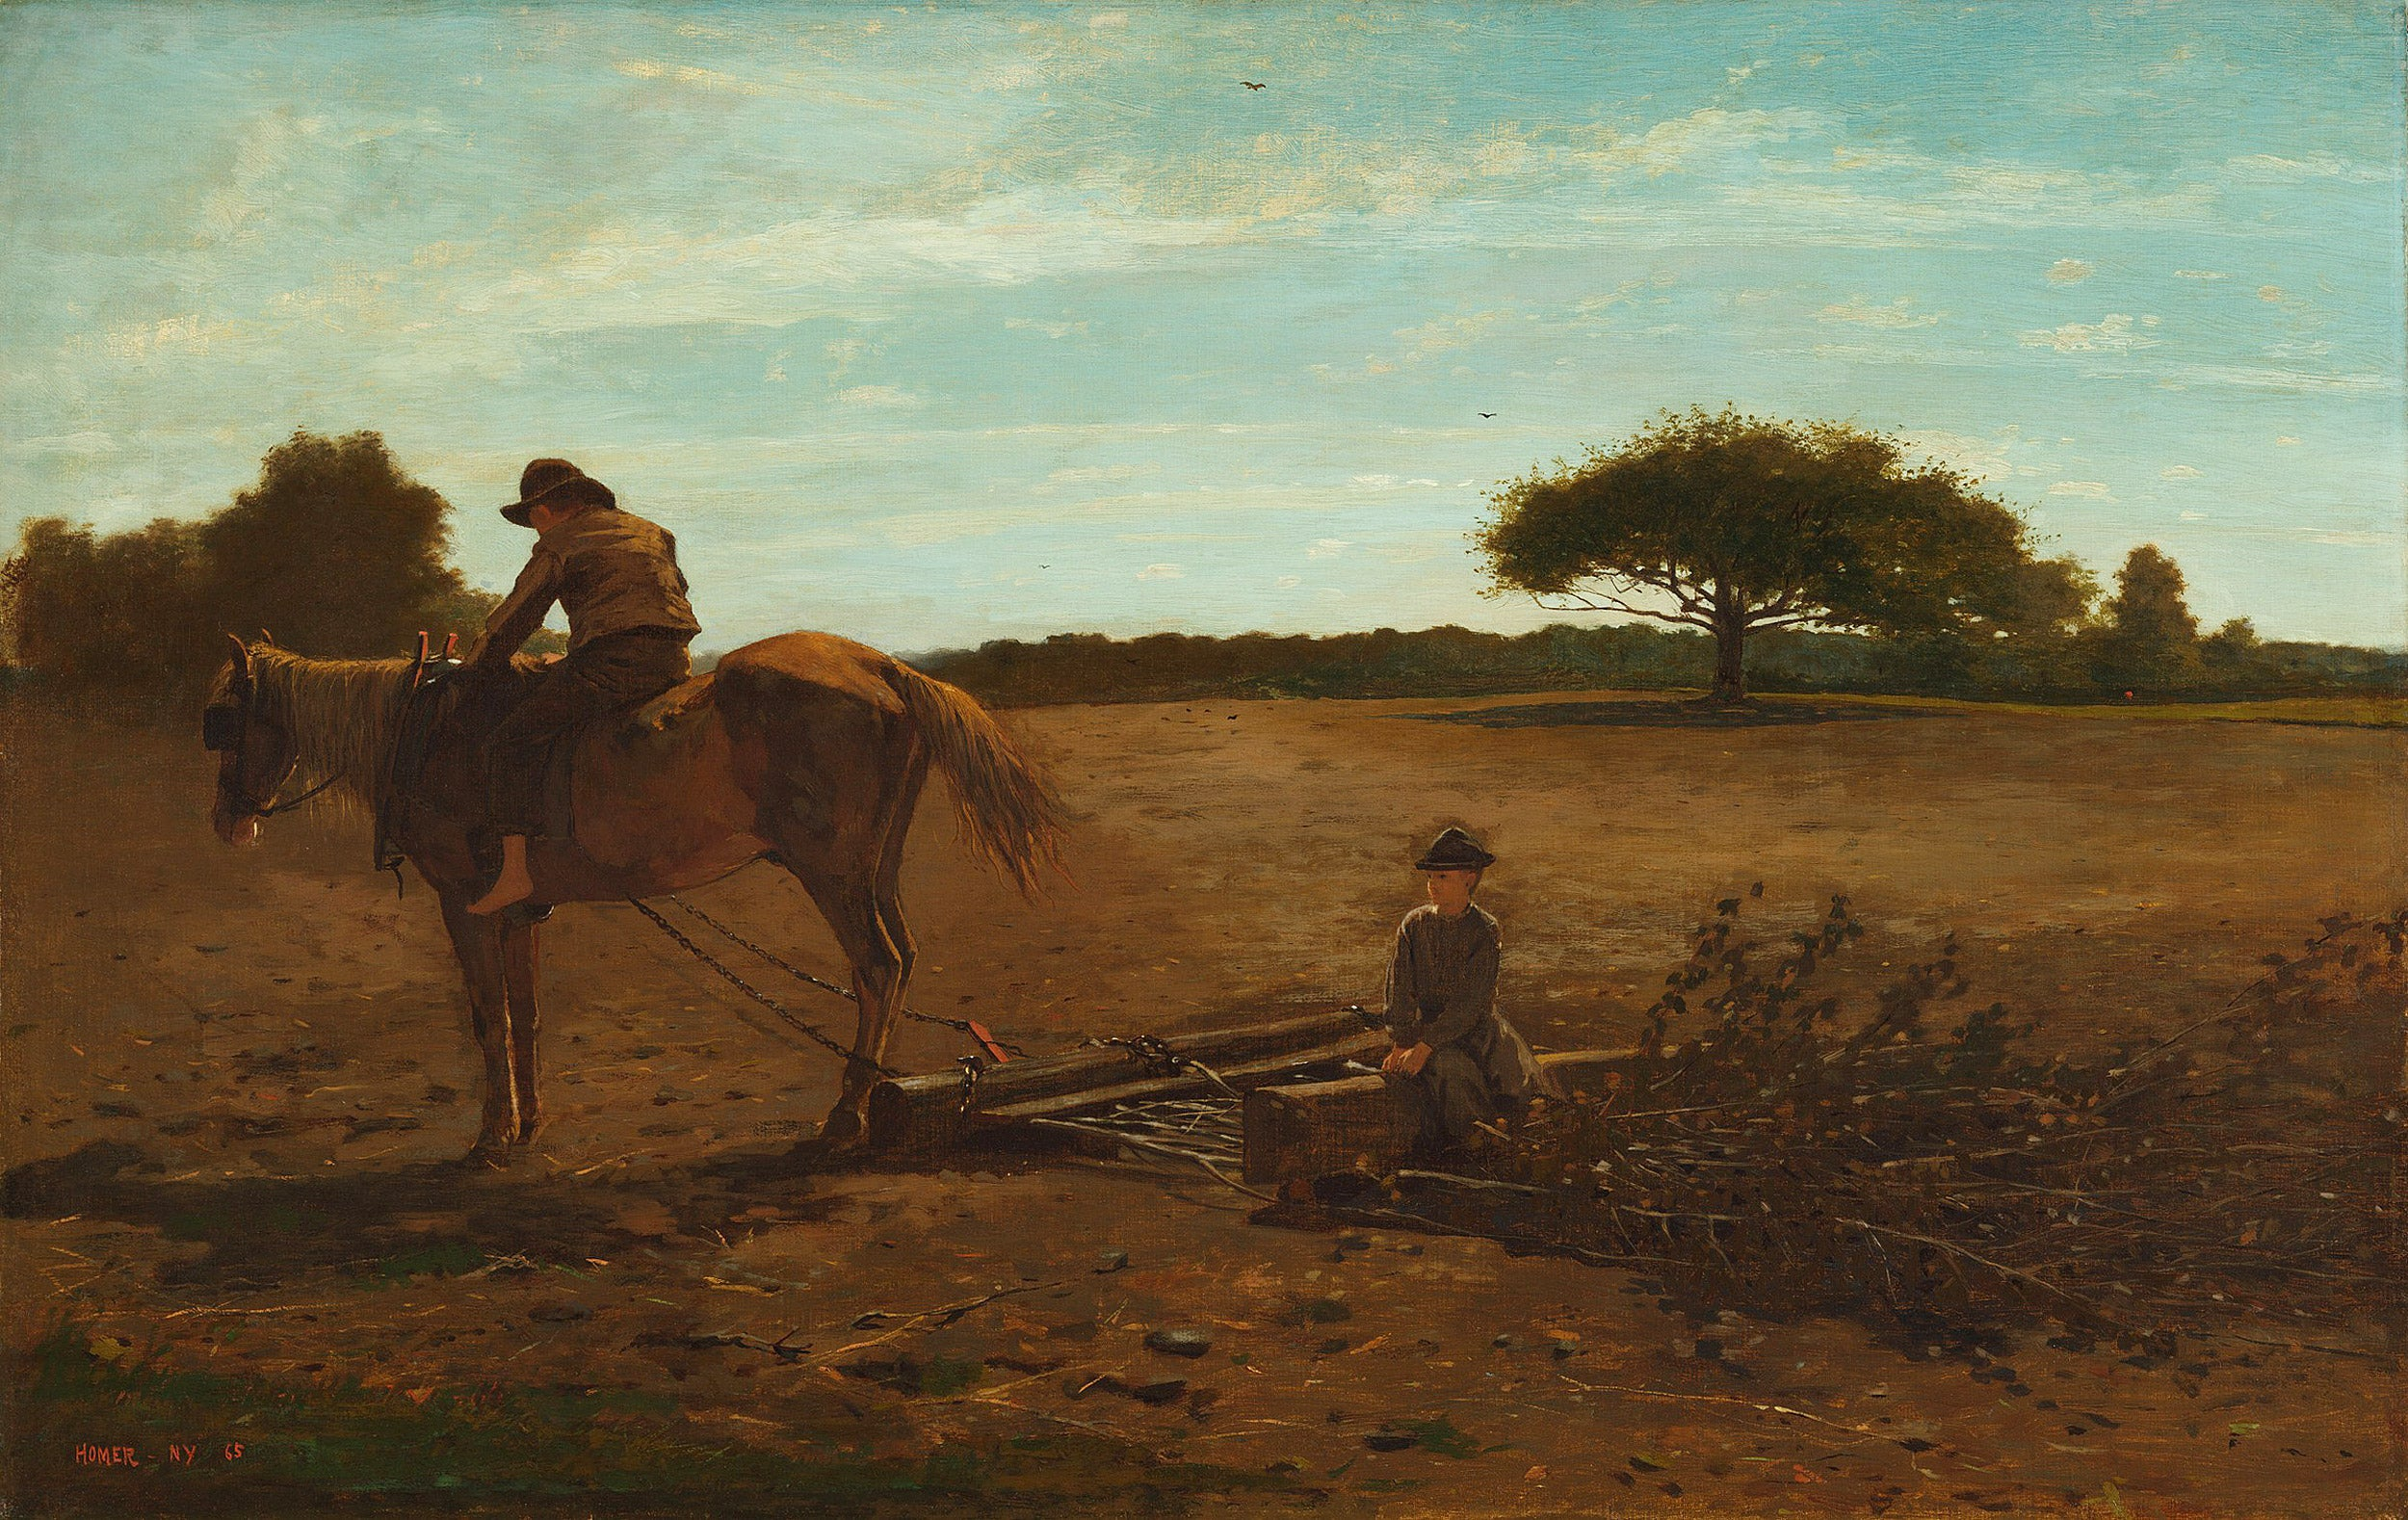 Winslow Homer's work as Civil War art correspondent focus of 'Eyewitness' exhibit at Harvard